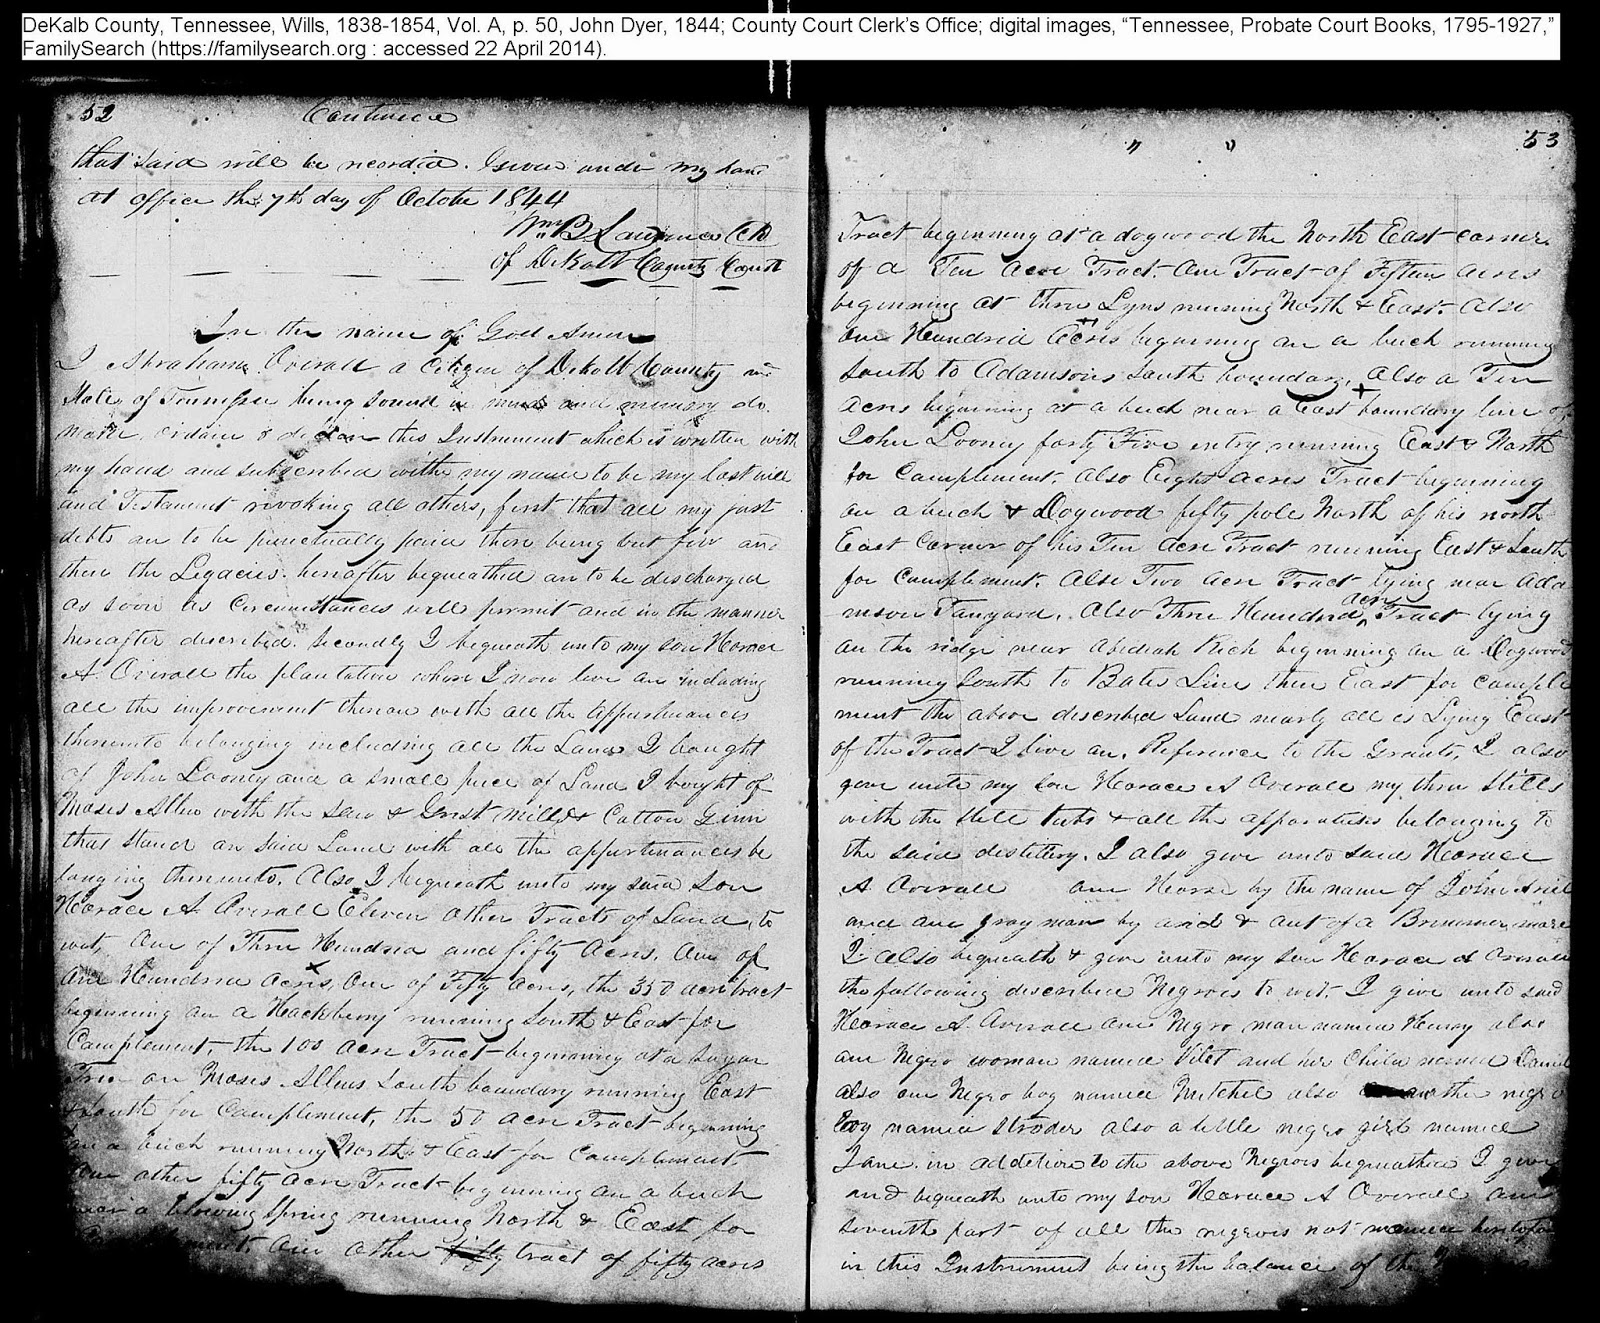 Will of John Dyer, DeKalb Co., TN, 1844, p. 53